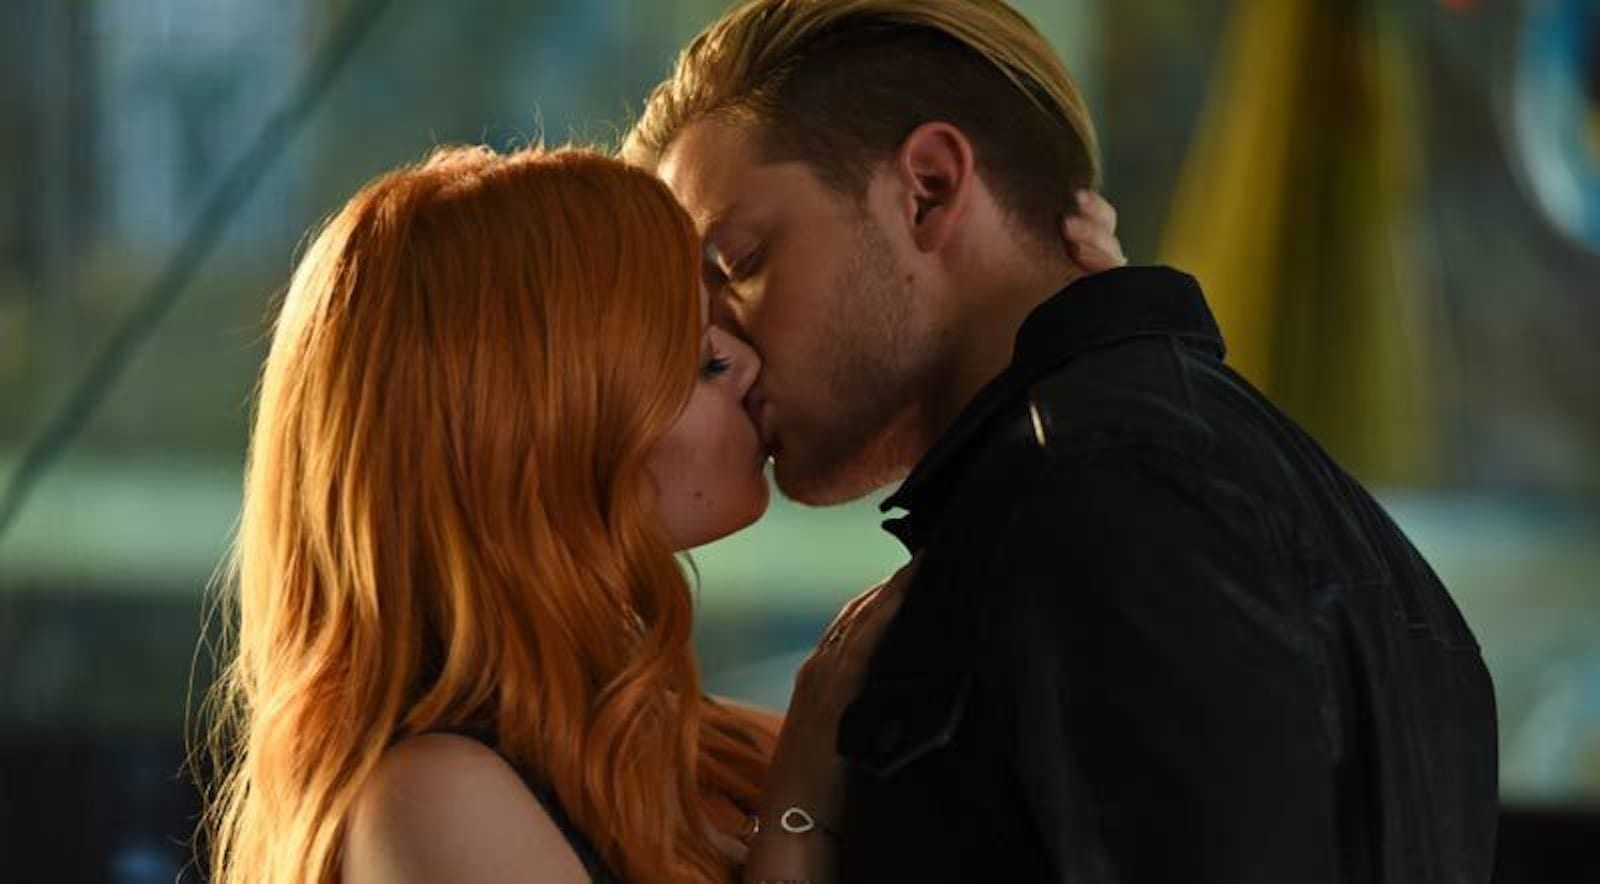 Chase the Clace romance with our 'Shadowhunters' quiz - Film